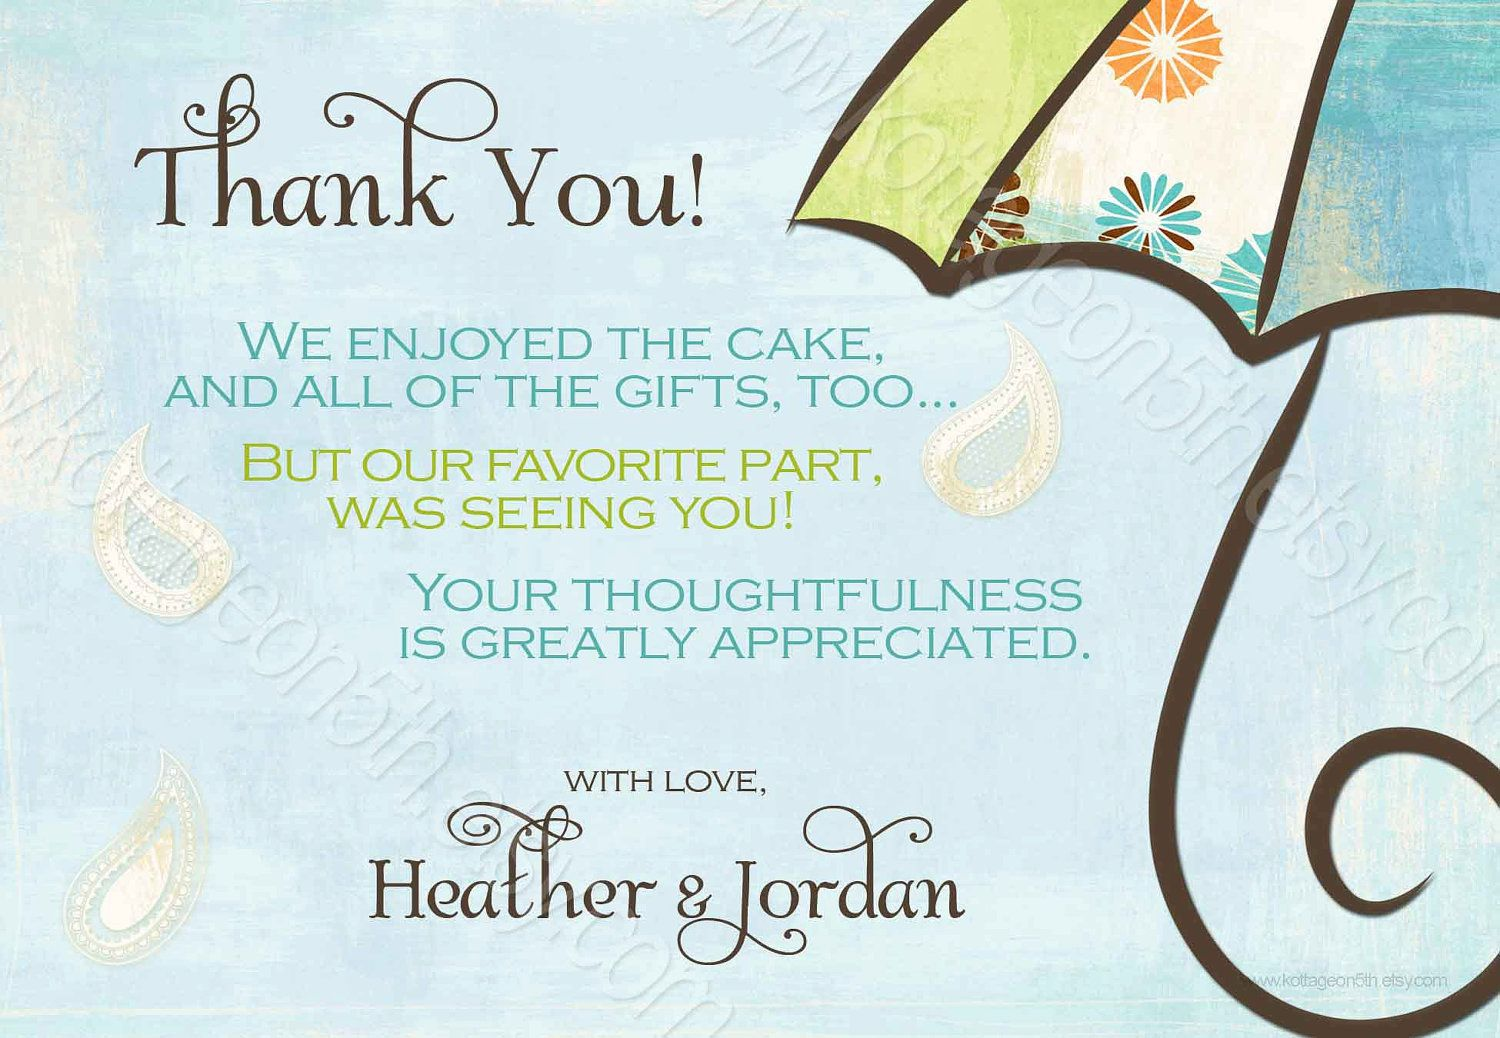 009 Shocking Thank You Note Wording Baby Shower Picture  For Hosting CardFull